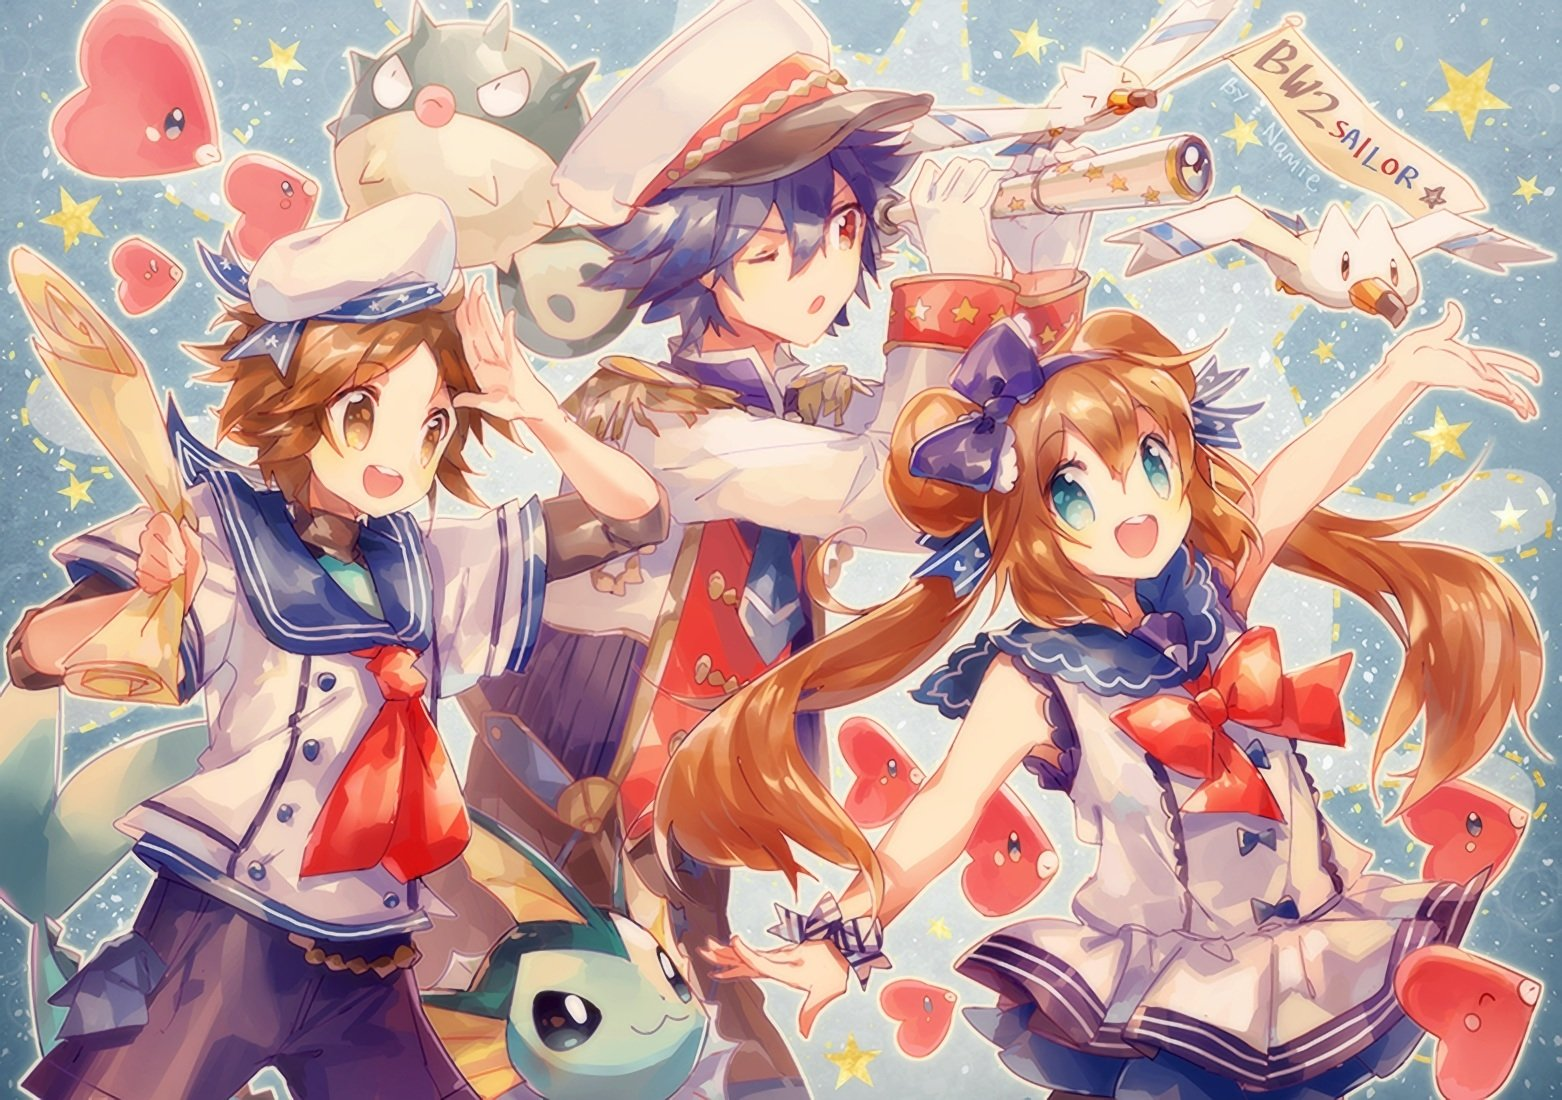 动漫 - 宠物小精灵  Long Hair Twintails Short Hair Blue Hair Brown Hair Blue Eyes Red Eyes Uniform Telescope Luvdisc (Pokémon) Wingull (Pokémon) Qwilfish (Pokémon) Vaporeon (Pokémon) 壁纸